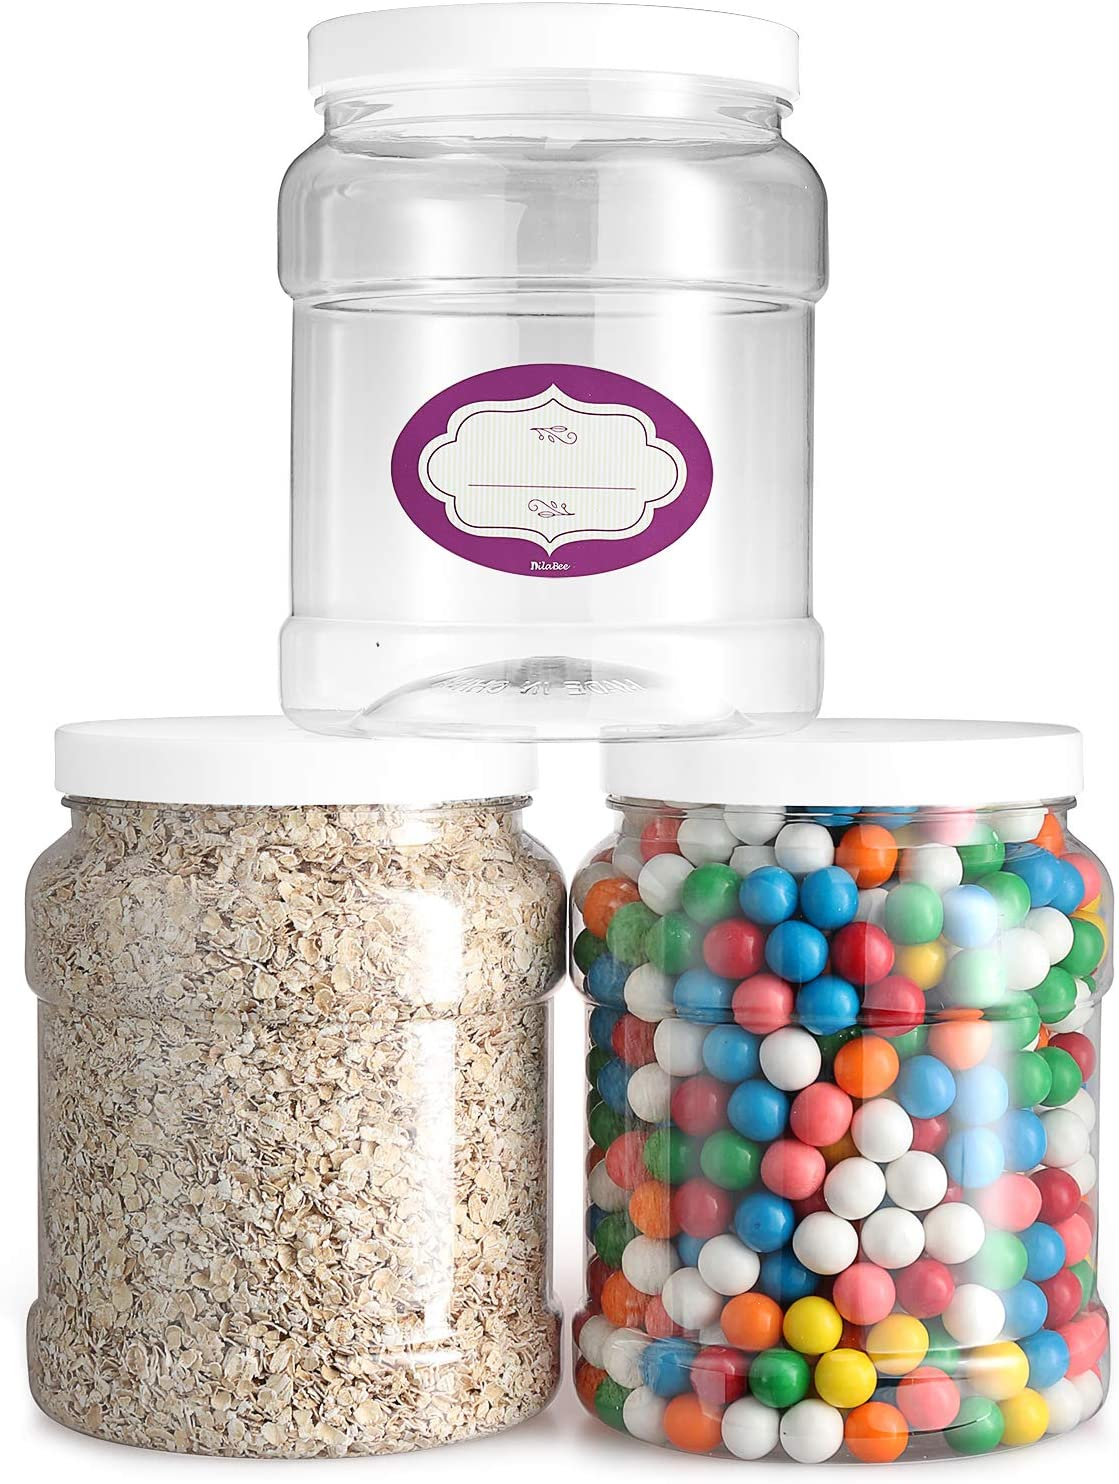 Pack Free shipping anywhere in Max 76% OFF the nation of 3-64 Oz Clear Empty Plastic Lids Storage containers with